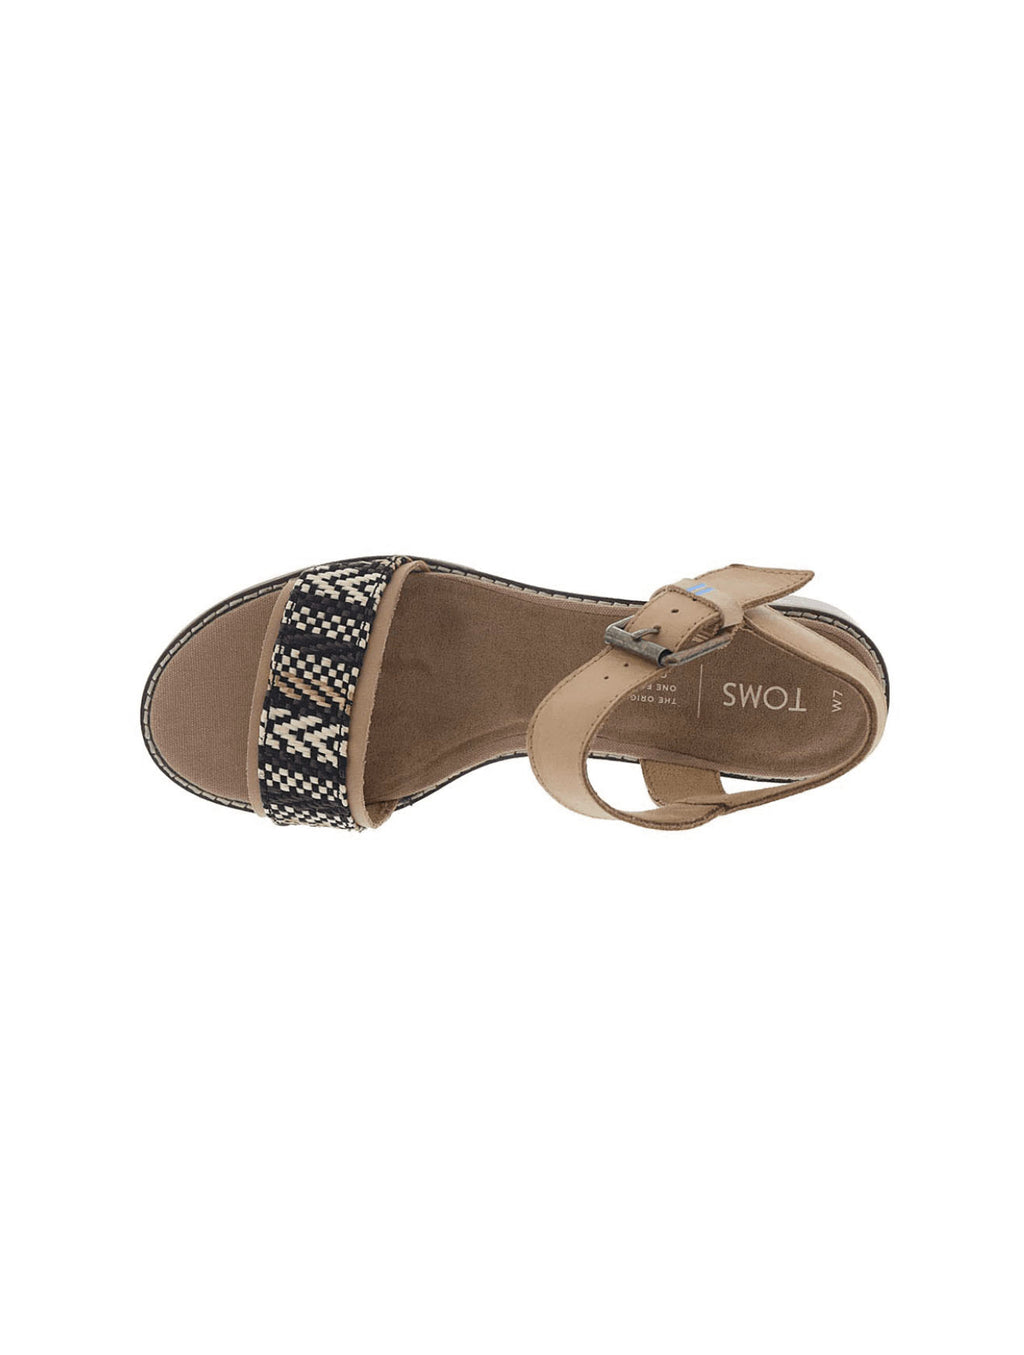 Toms Camilia Sandal in Honey Geometric